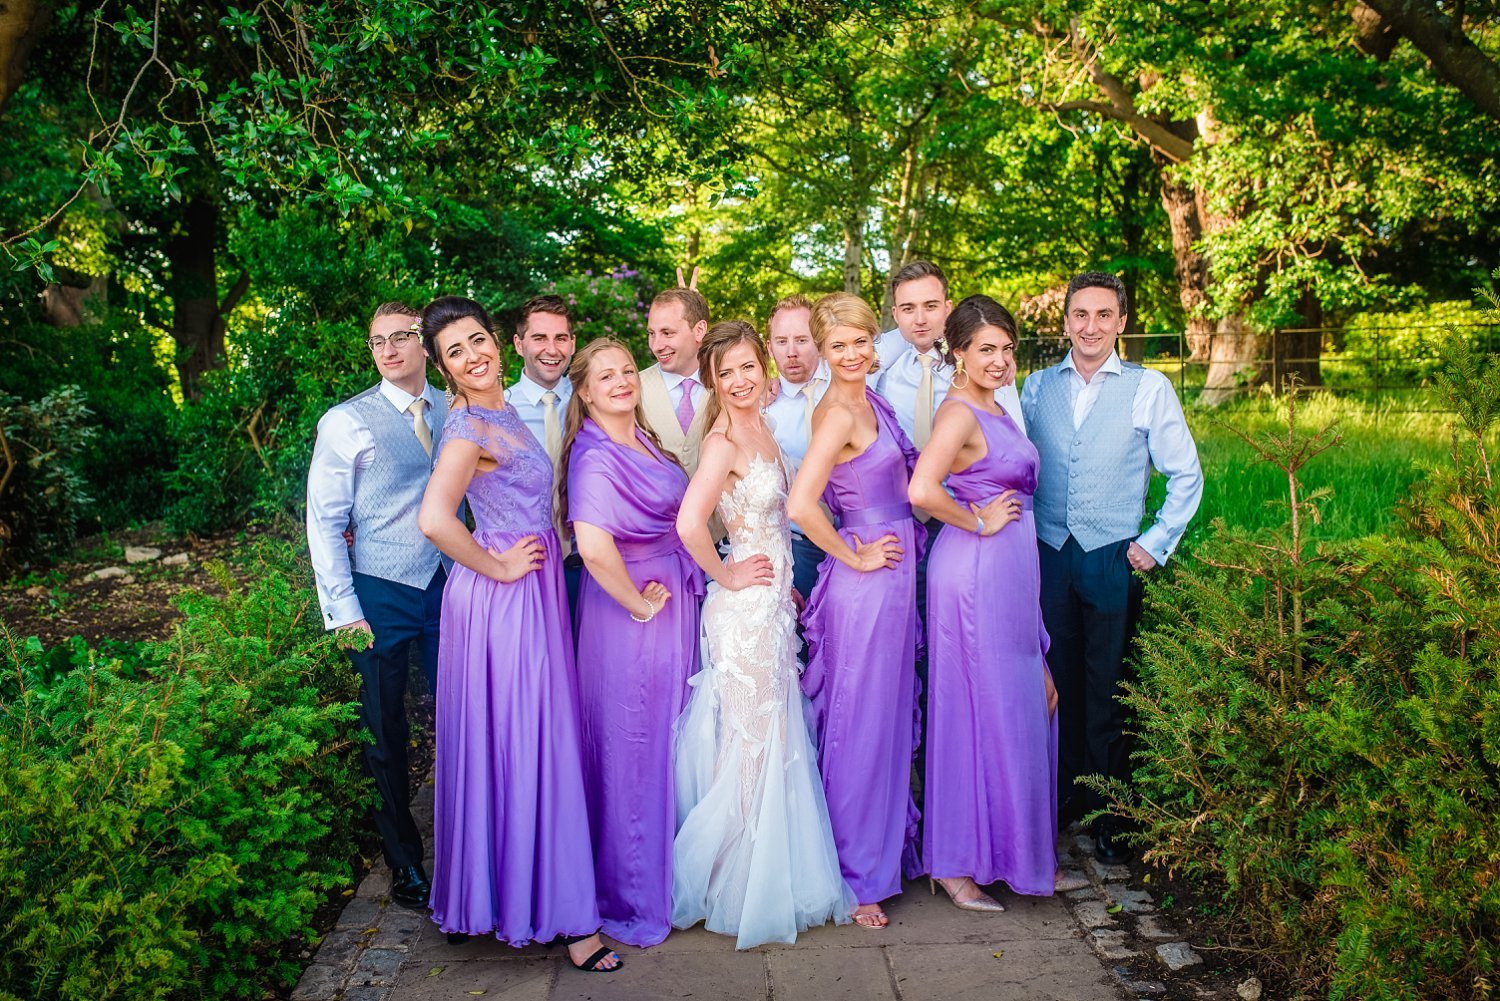 Fun-Filled wedding in Pembroke Lodge - group photo of bride, groom, bridesmaids and groomsmen. they are all smiling